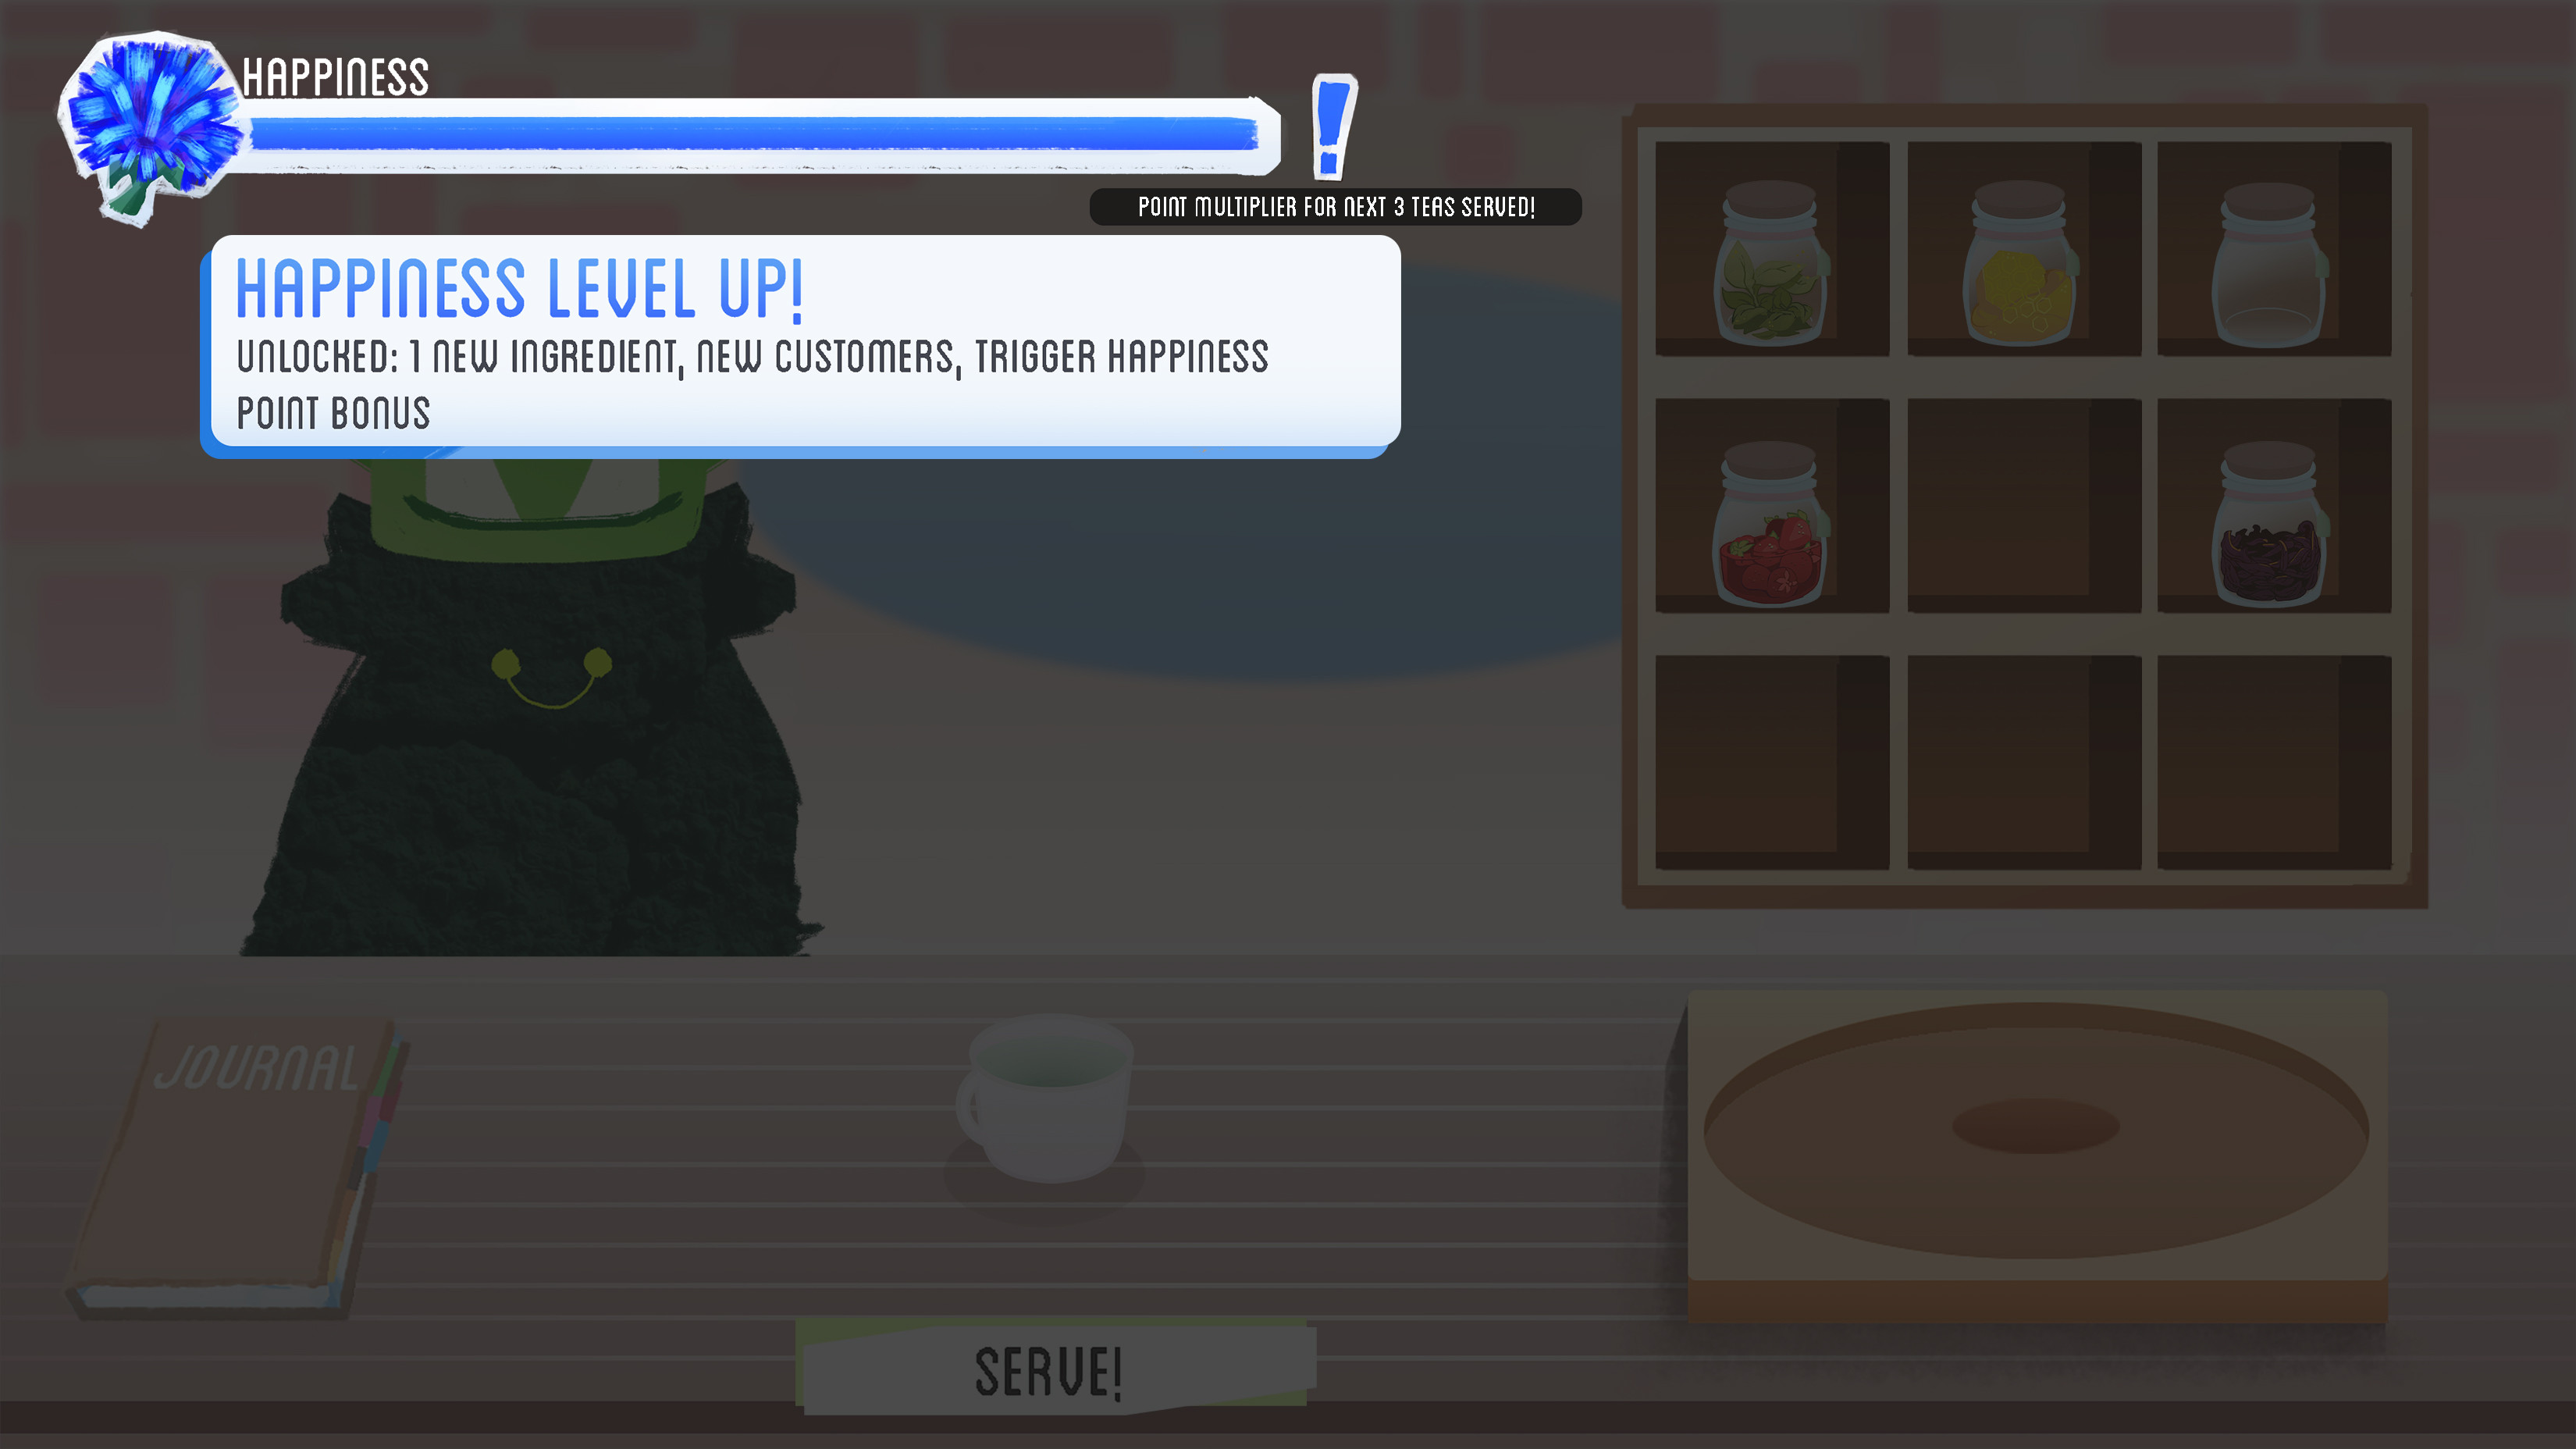 Leveling up can occur after the player fills up the bar, which upgrades the flower icon on the left of the bar as well as the flower in the shop front.